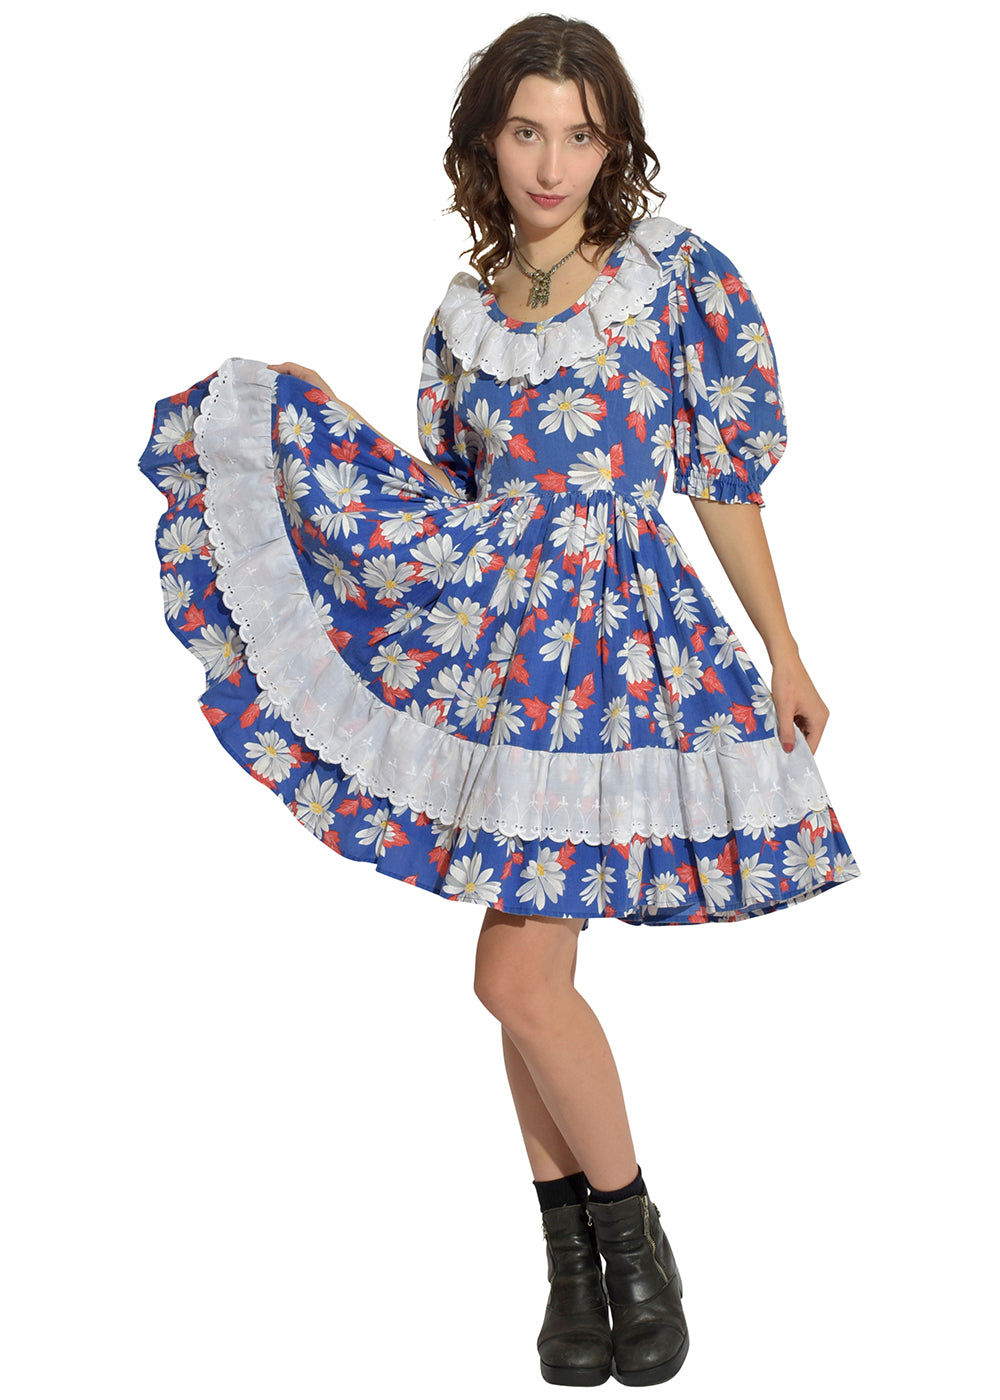 Daisy Western Square Dance Dress